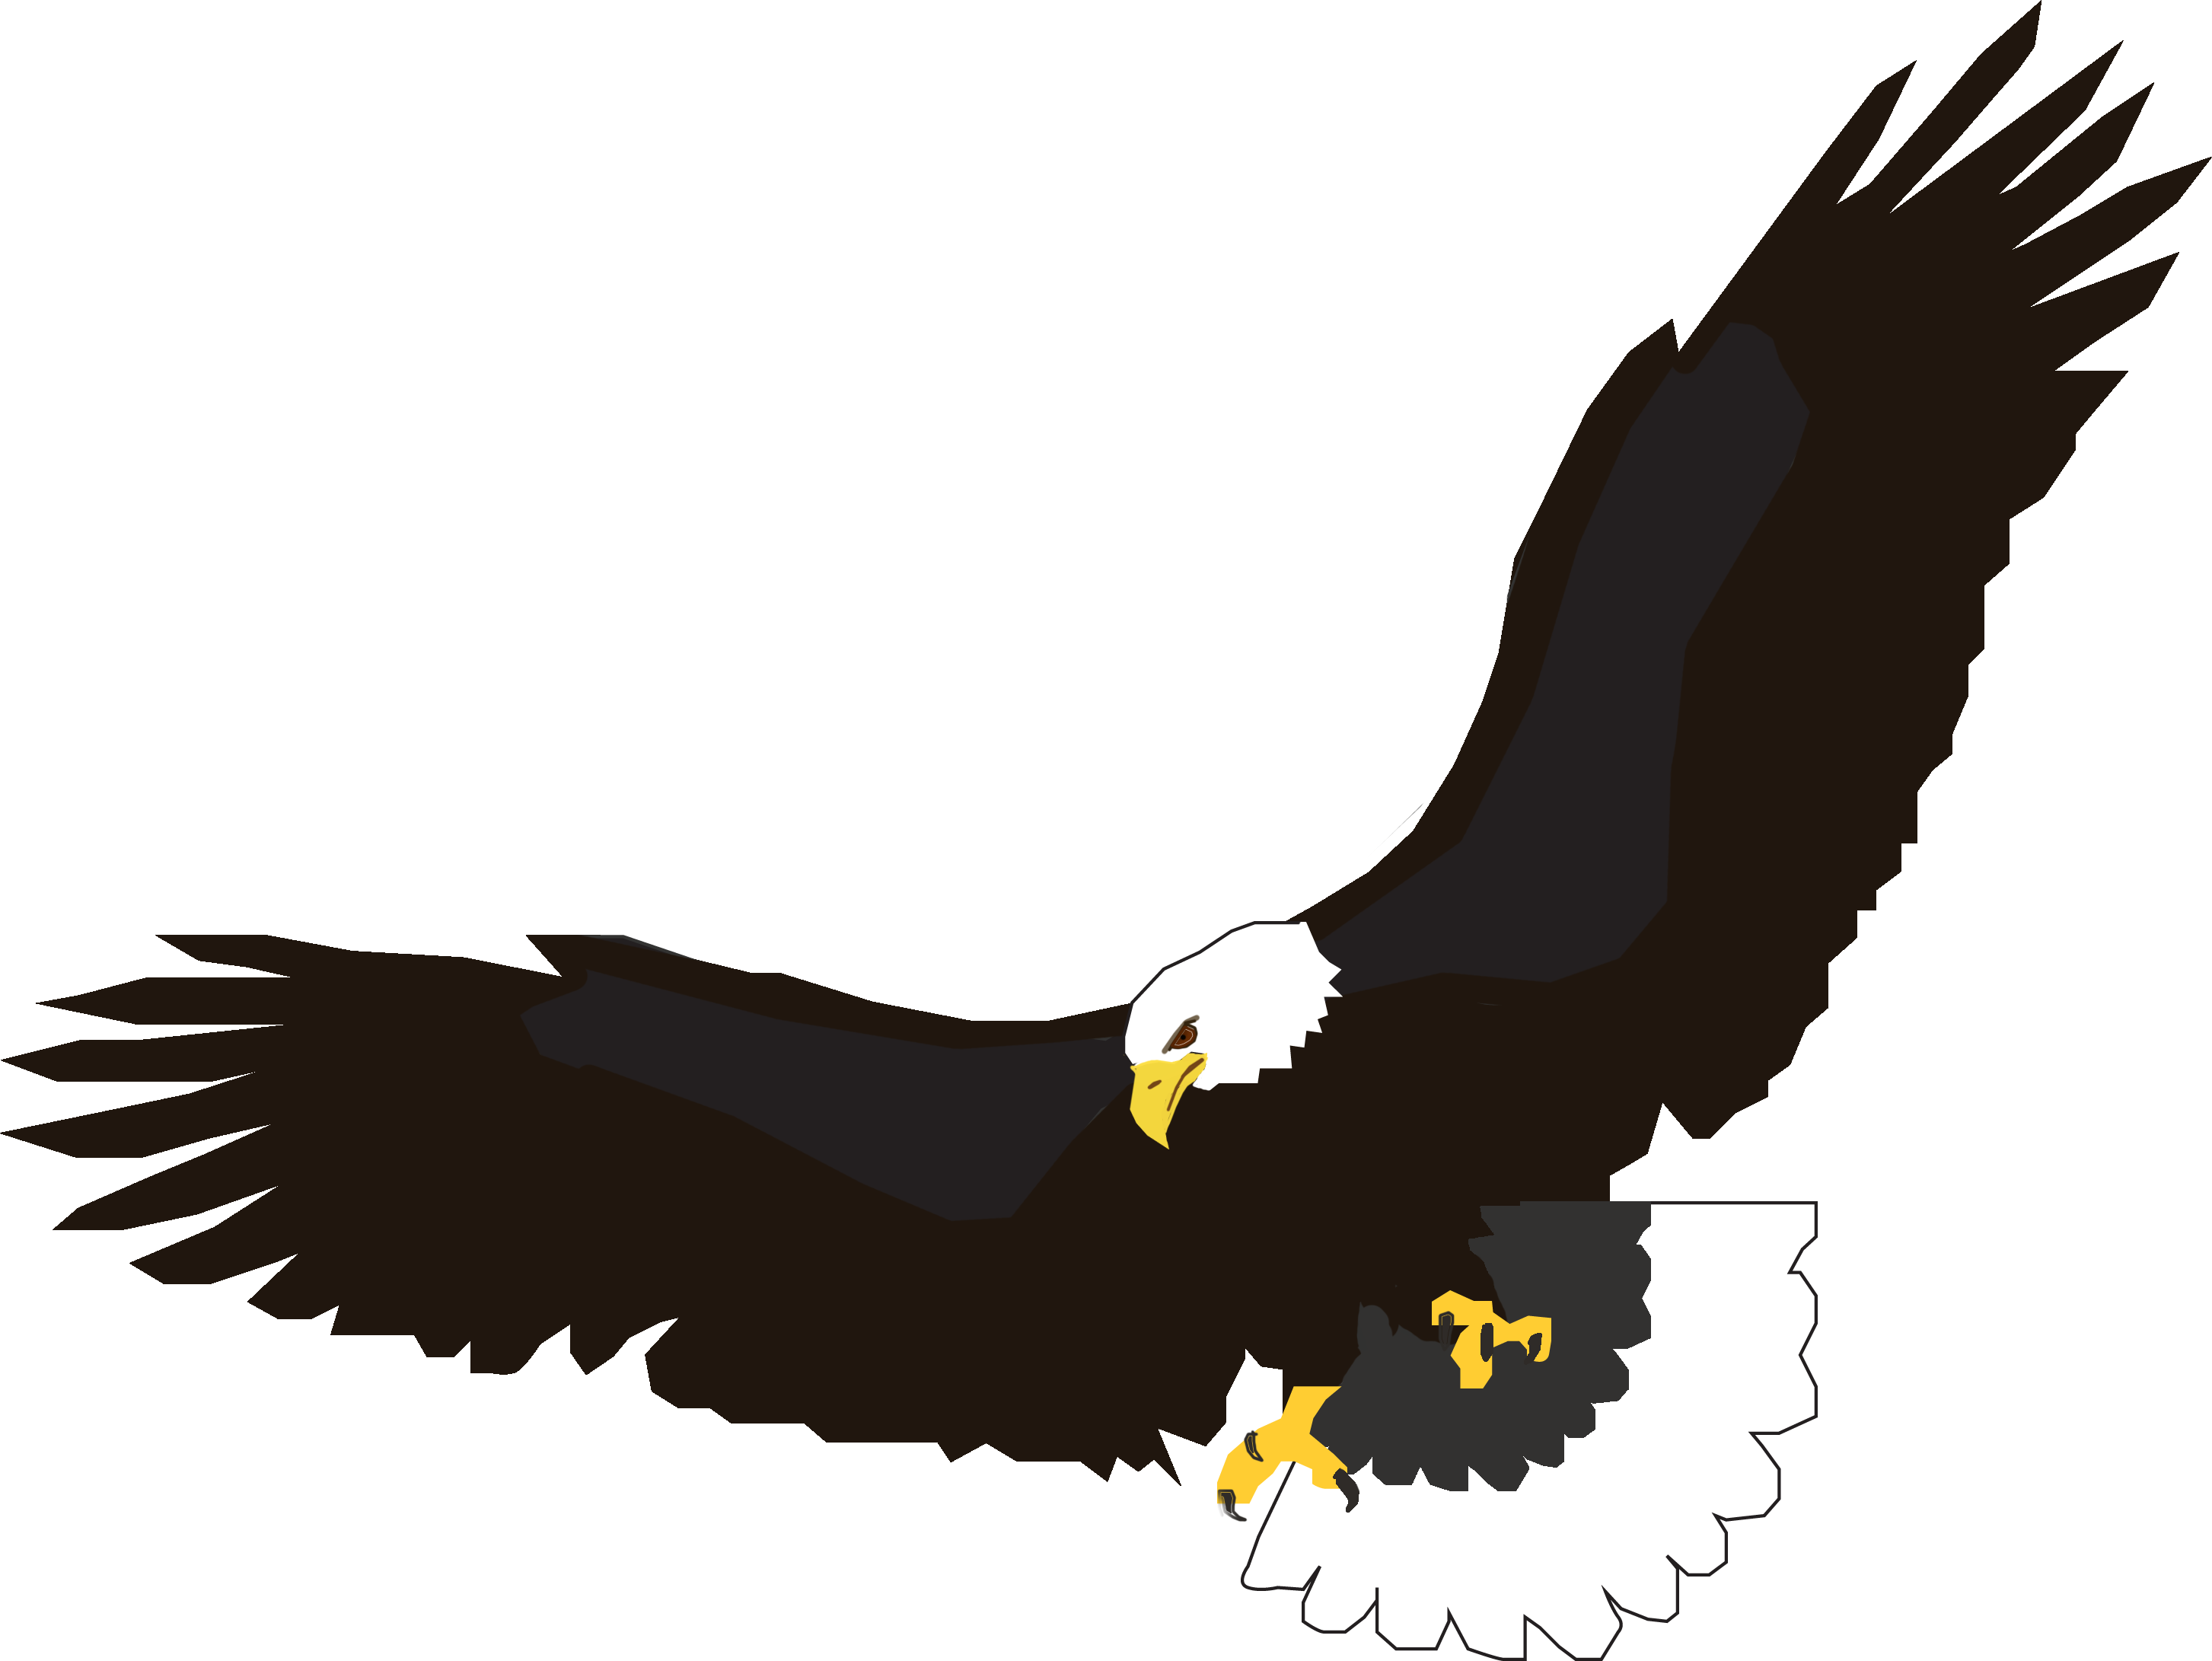 flying eagle clip art - photo #2